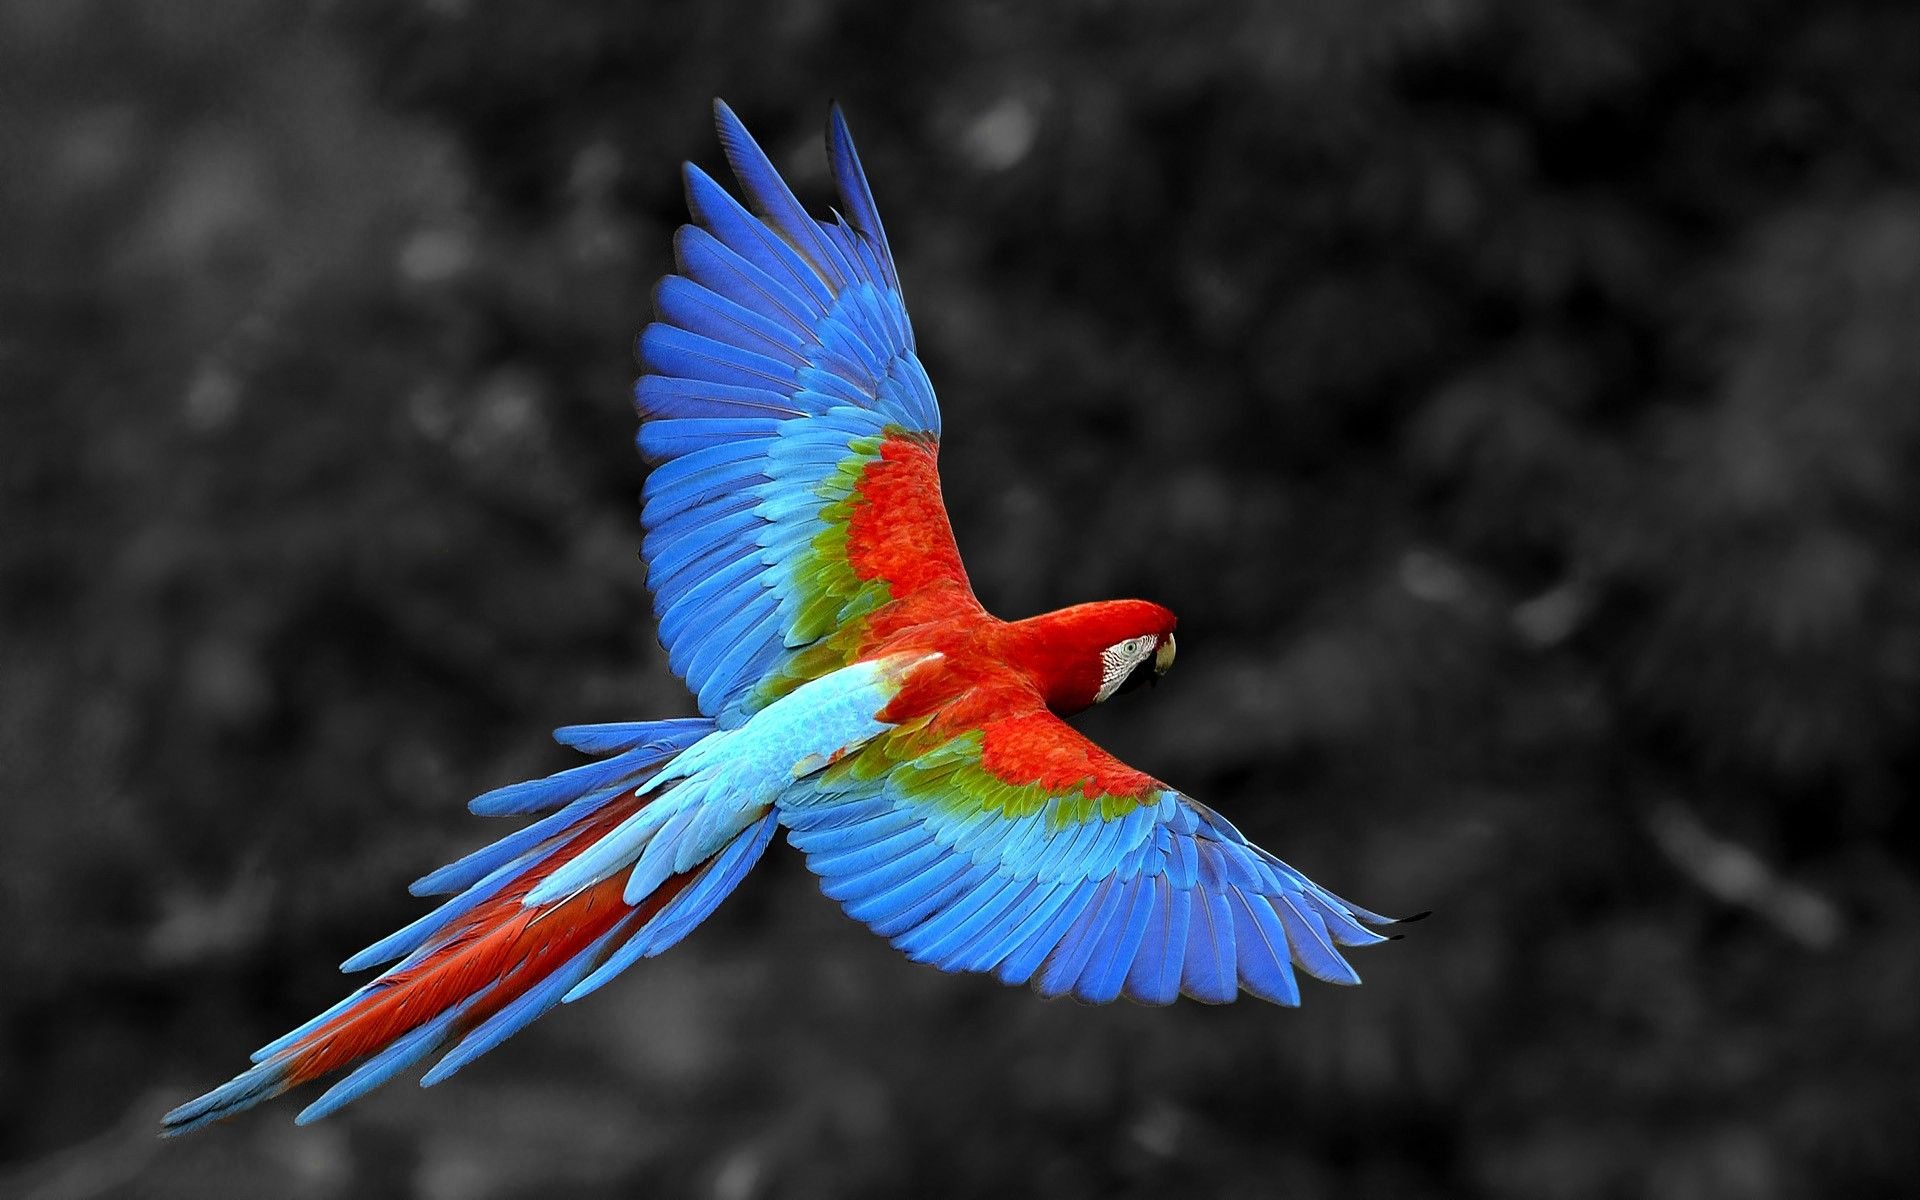 Beautiful parrot hd wallpapers that you will surely love hd beautiful parrot hd wallpapers that you will surely love voltagebd Images